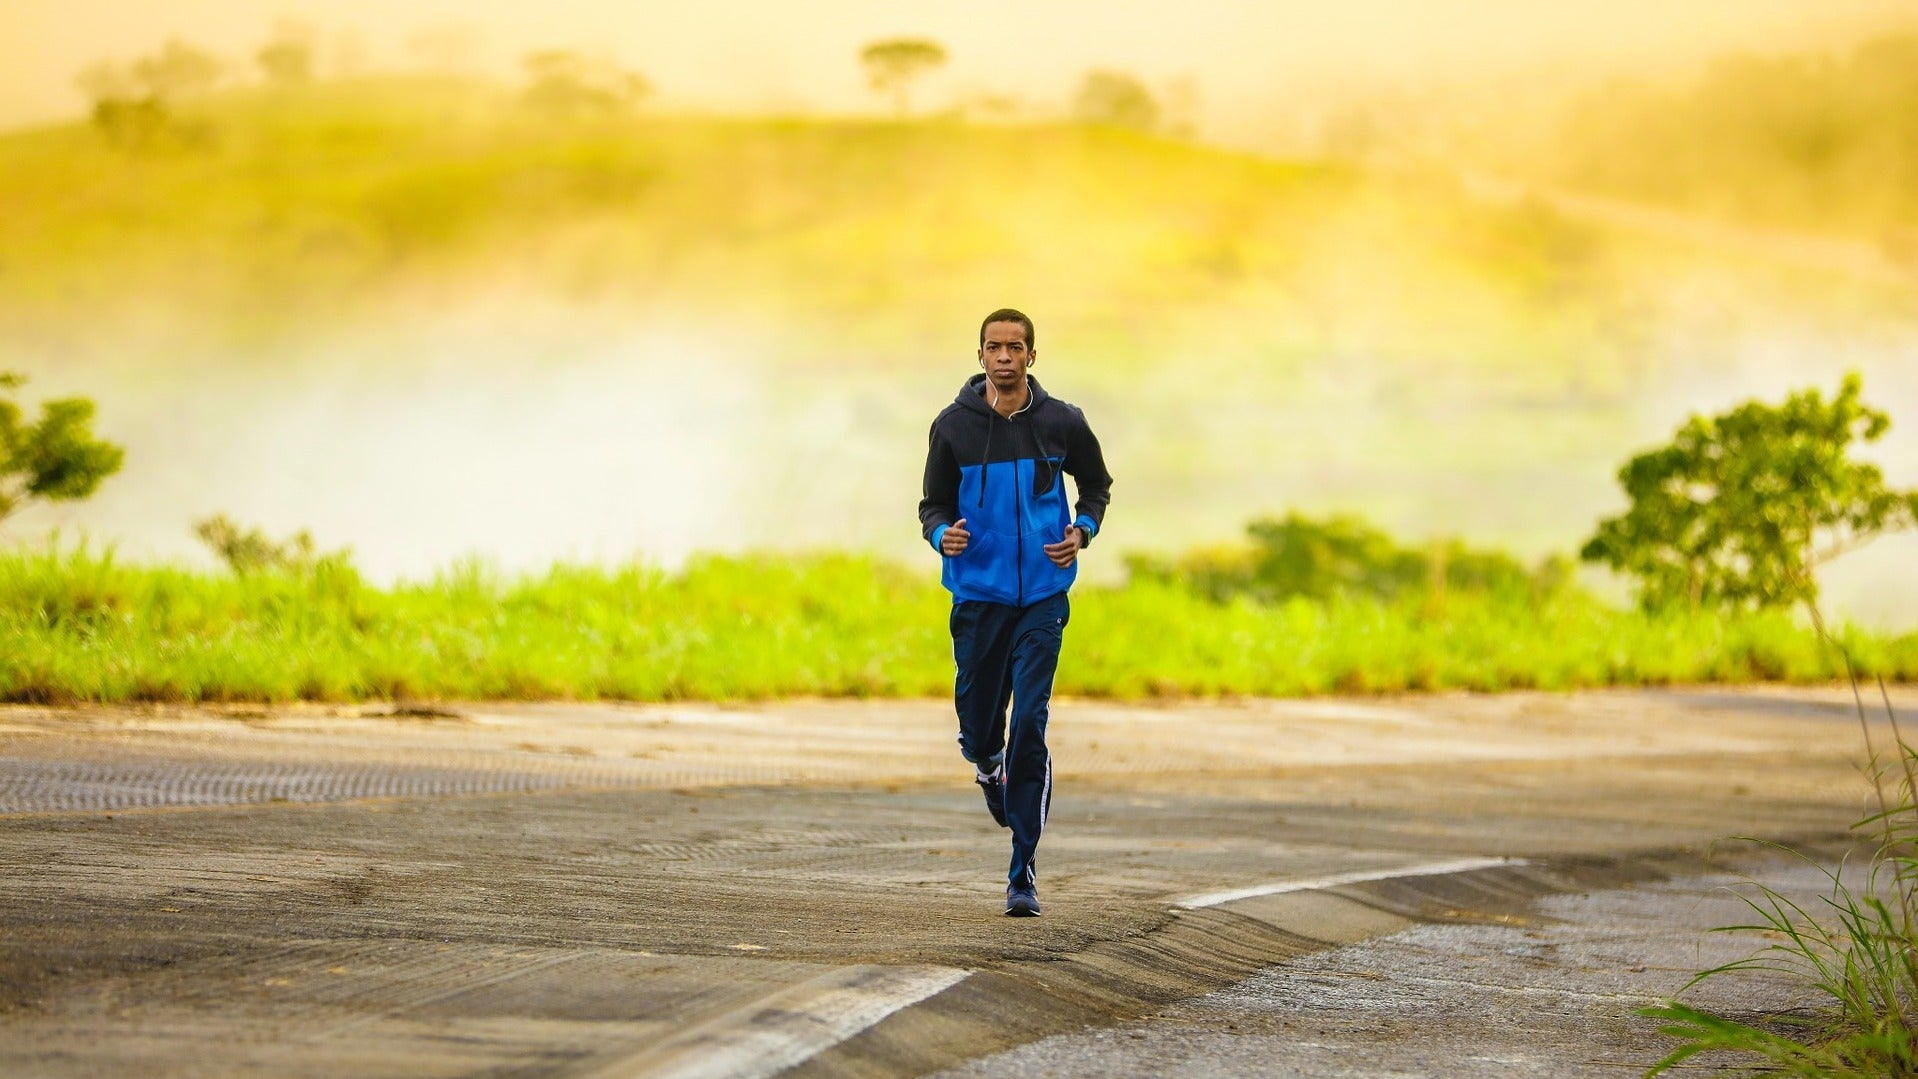 This Week, Challenge Yourself With A Tempo Run